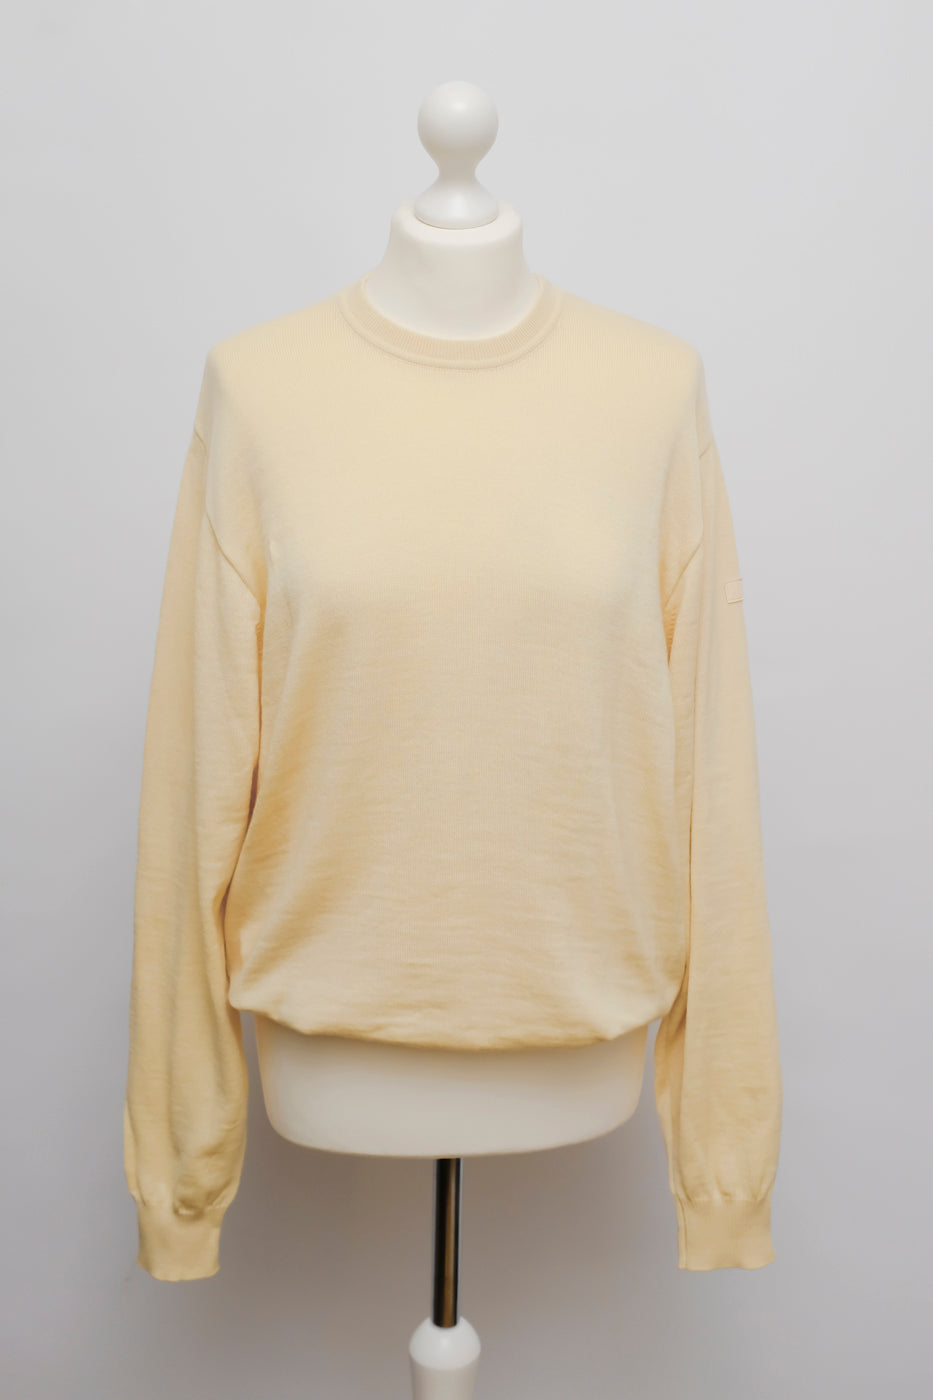 0003_YELLOW VIRGIN WOOL SWEATER